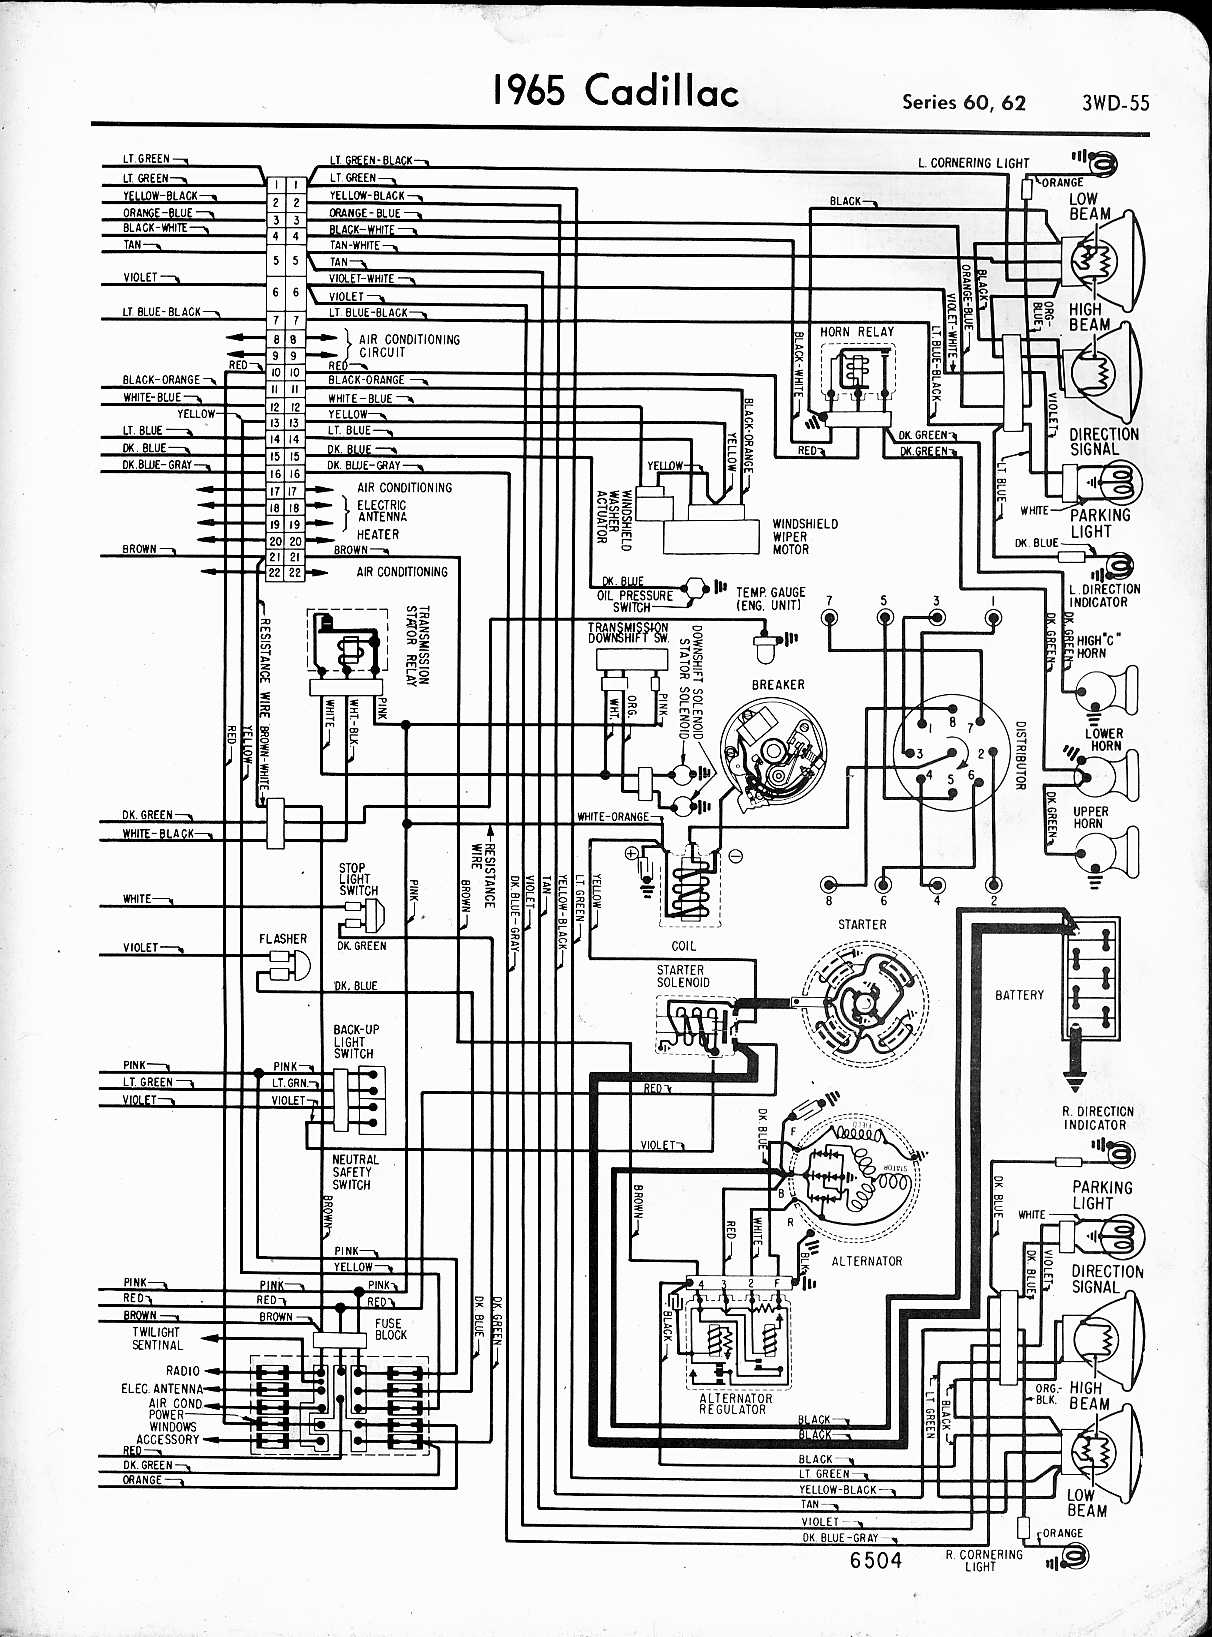 Cadillac Wiring Diagrams 1957 1965 Switch Series Diagram 6062 Right